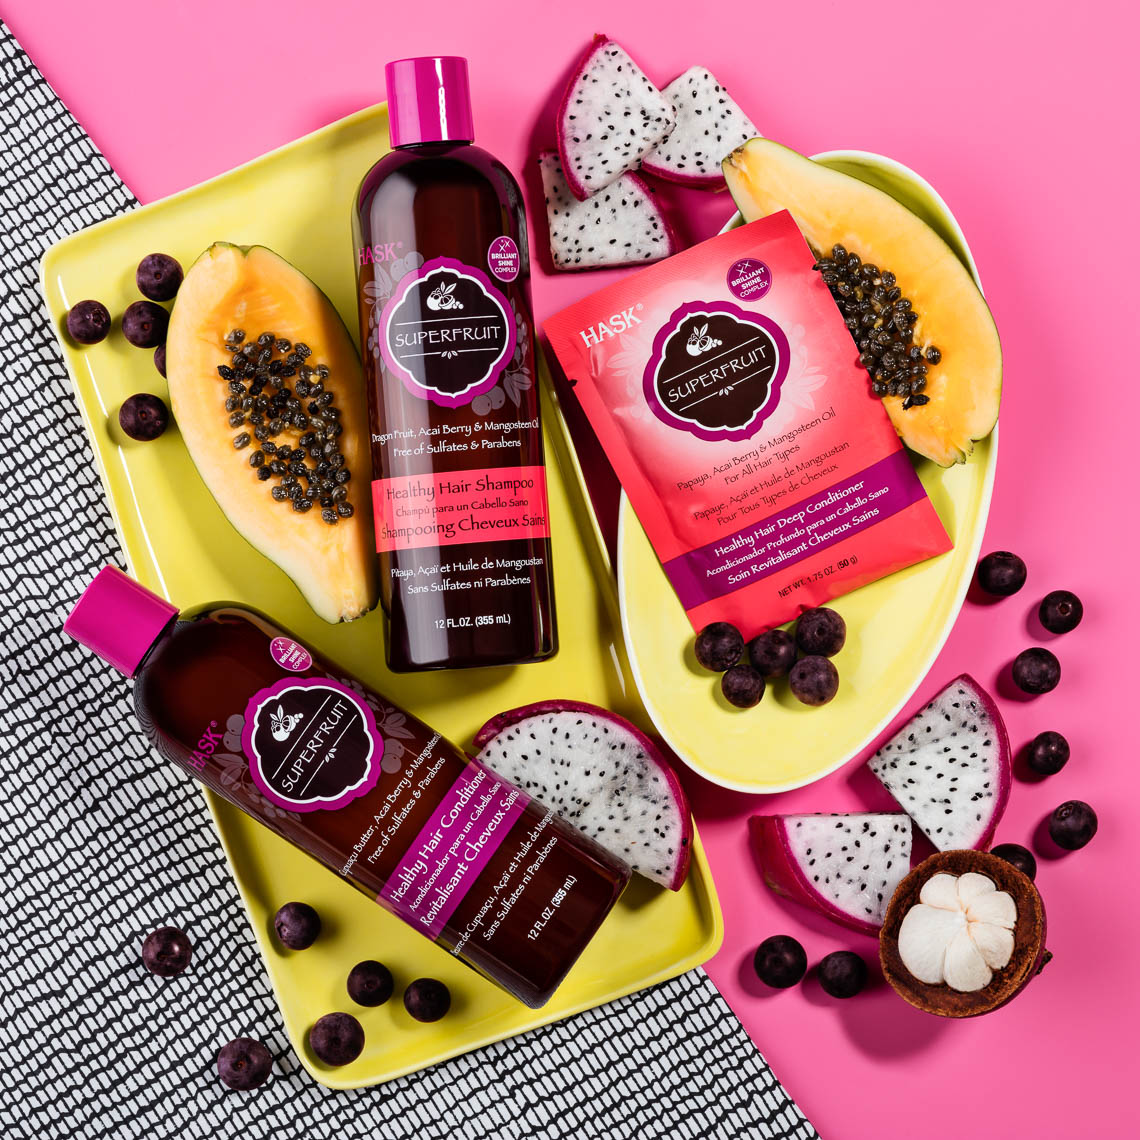 superfruit haircare still life